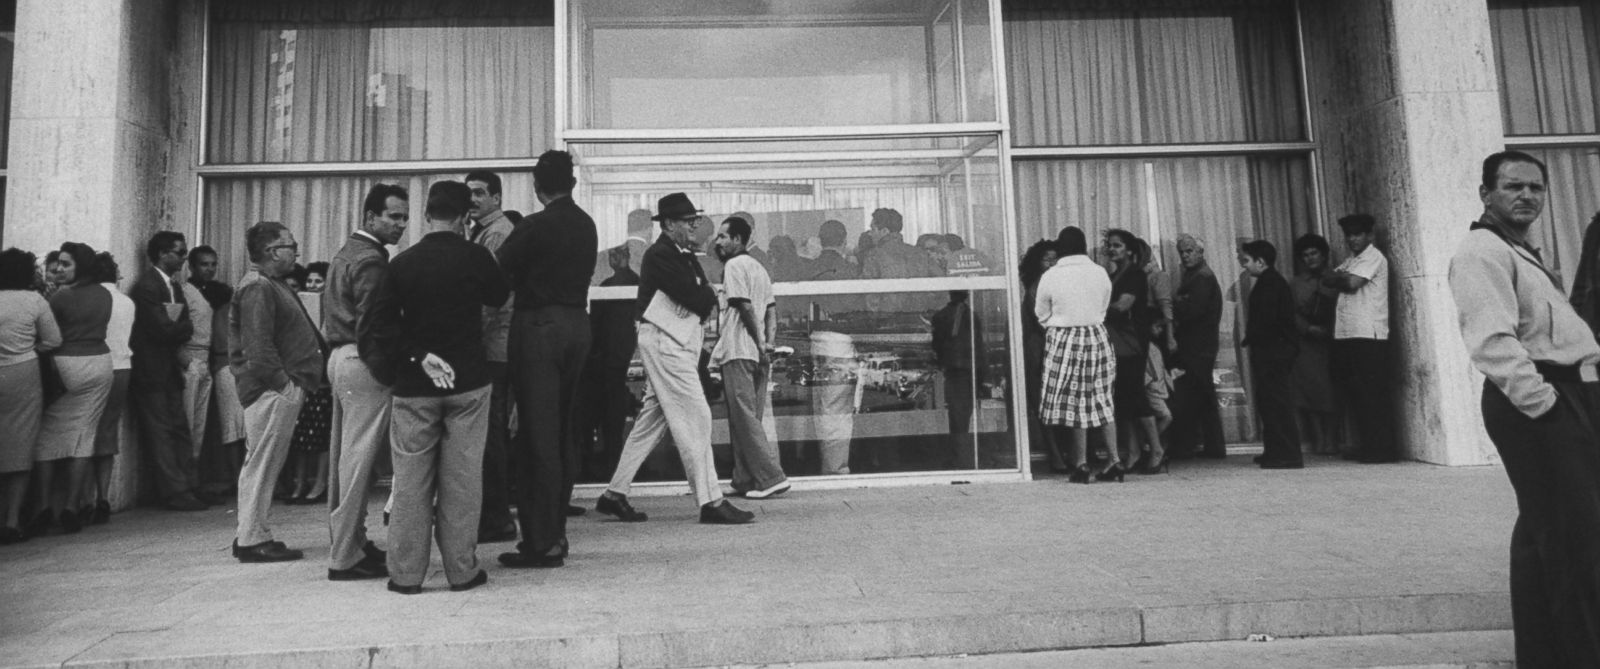 PHOTO: The U.S. Embassy in Havana was flooded with visa applicants at the time the U.S. broke diplomatic relations with Cuba in 1961.